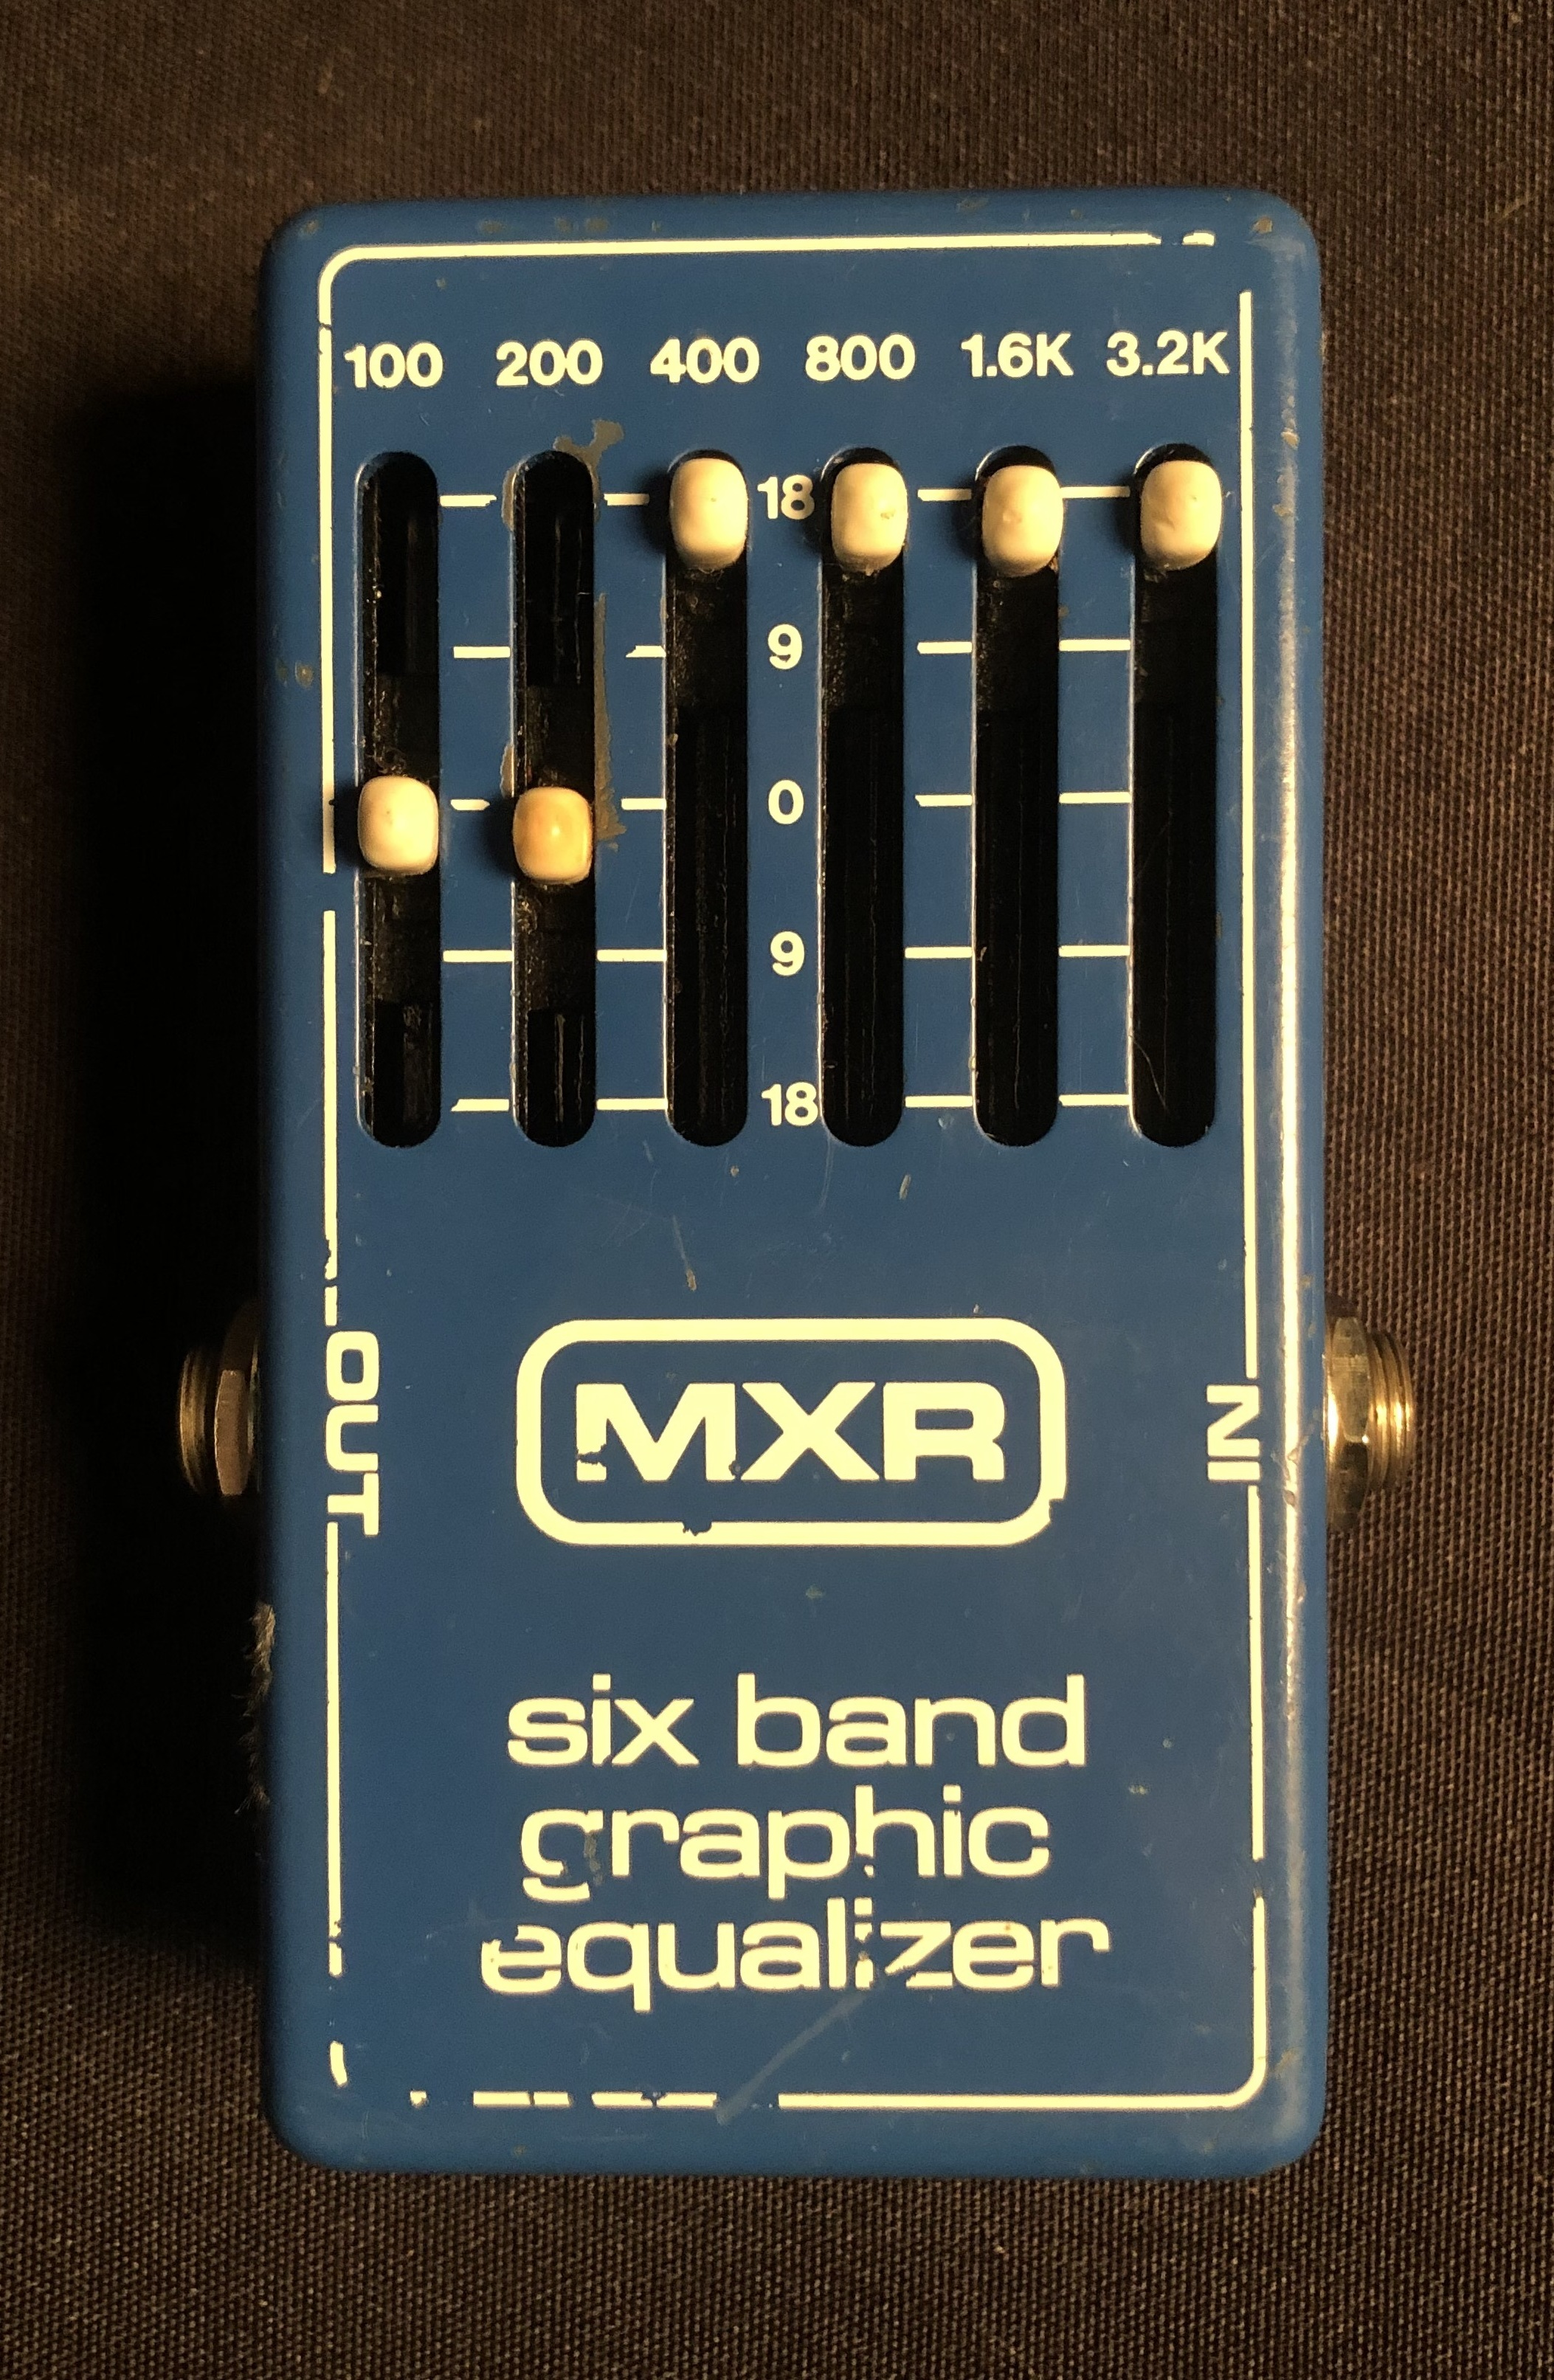 MXR - Six Band Graphic Equalizer Pedal